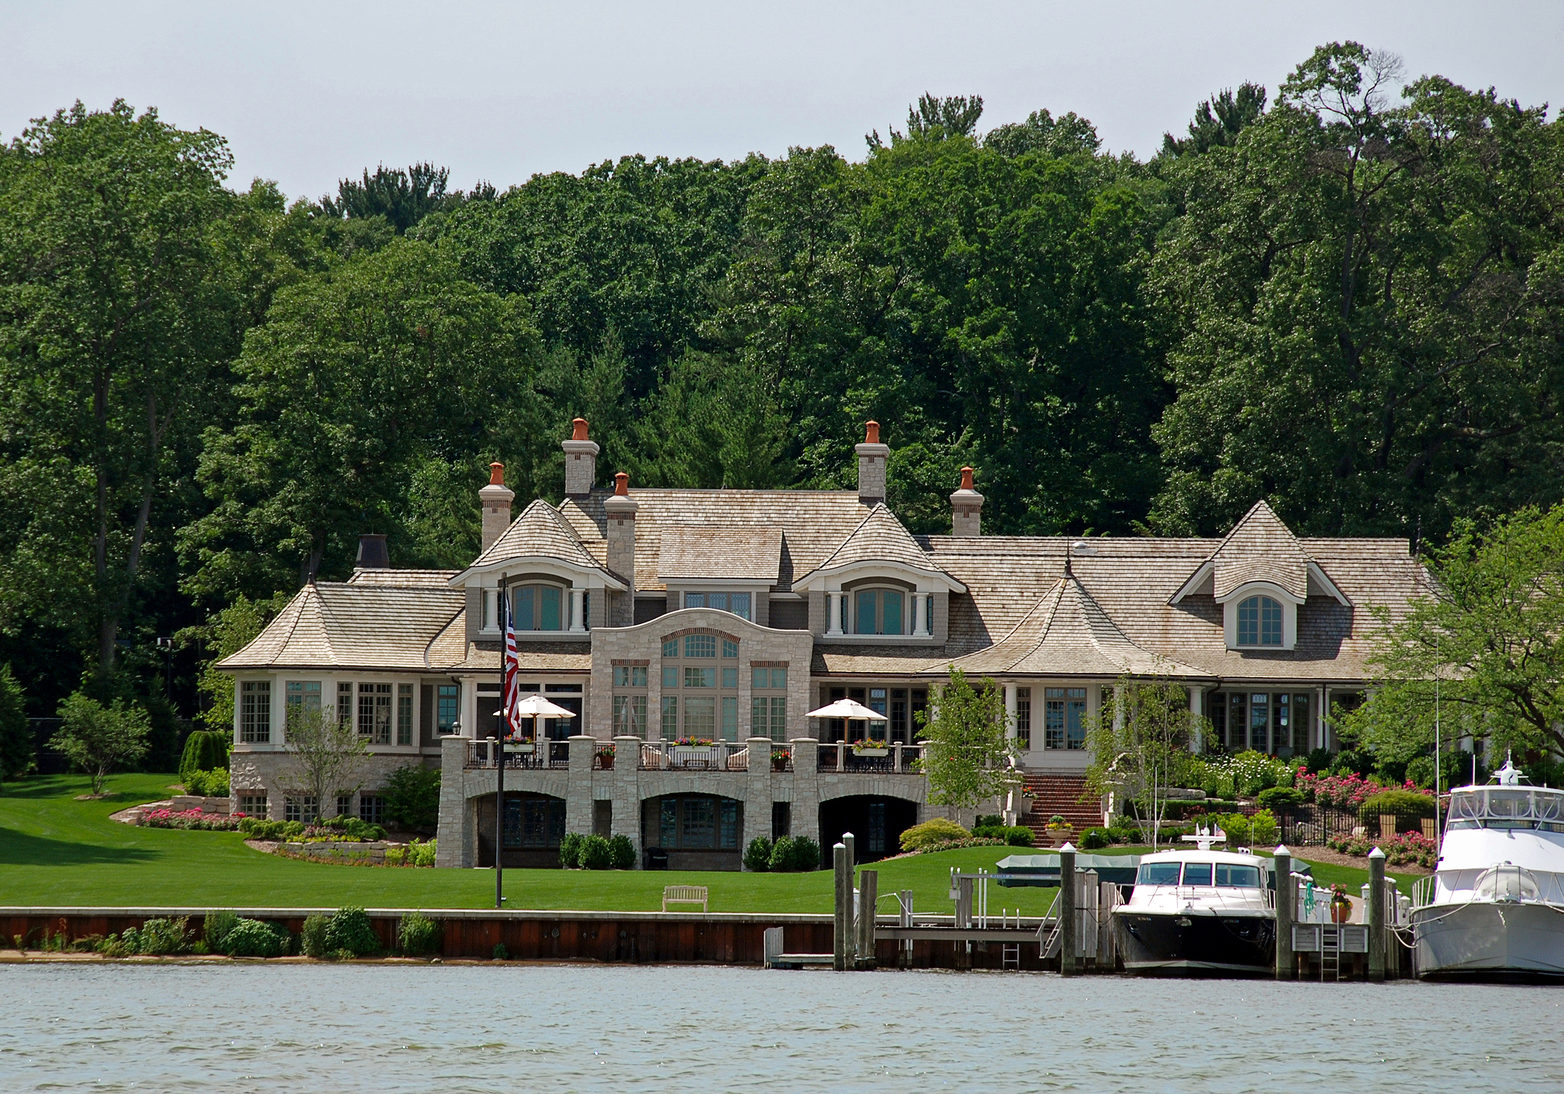 New estate on the lake shore with boat slips.